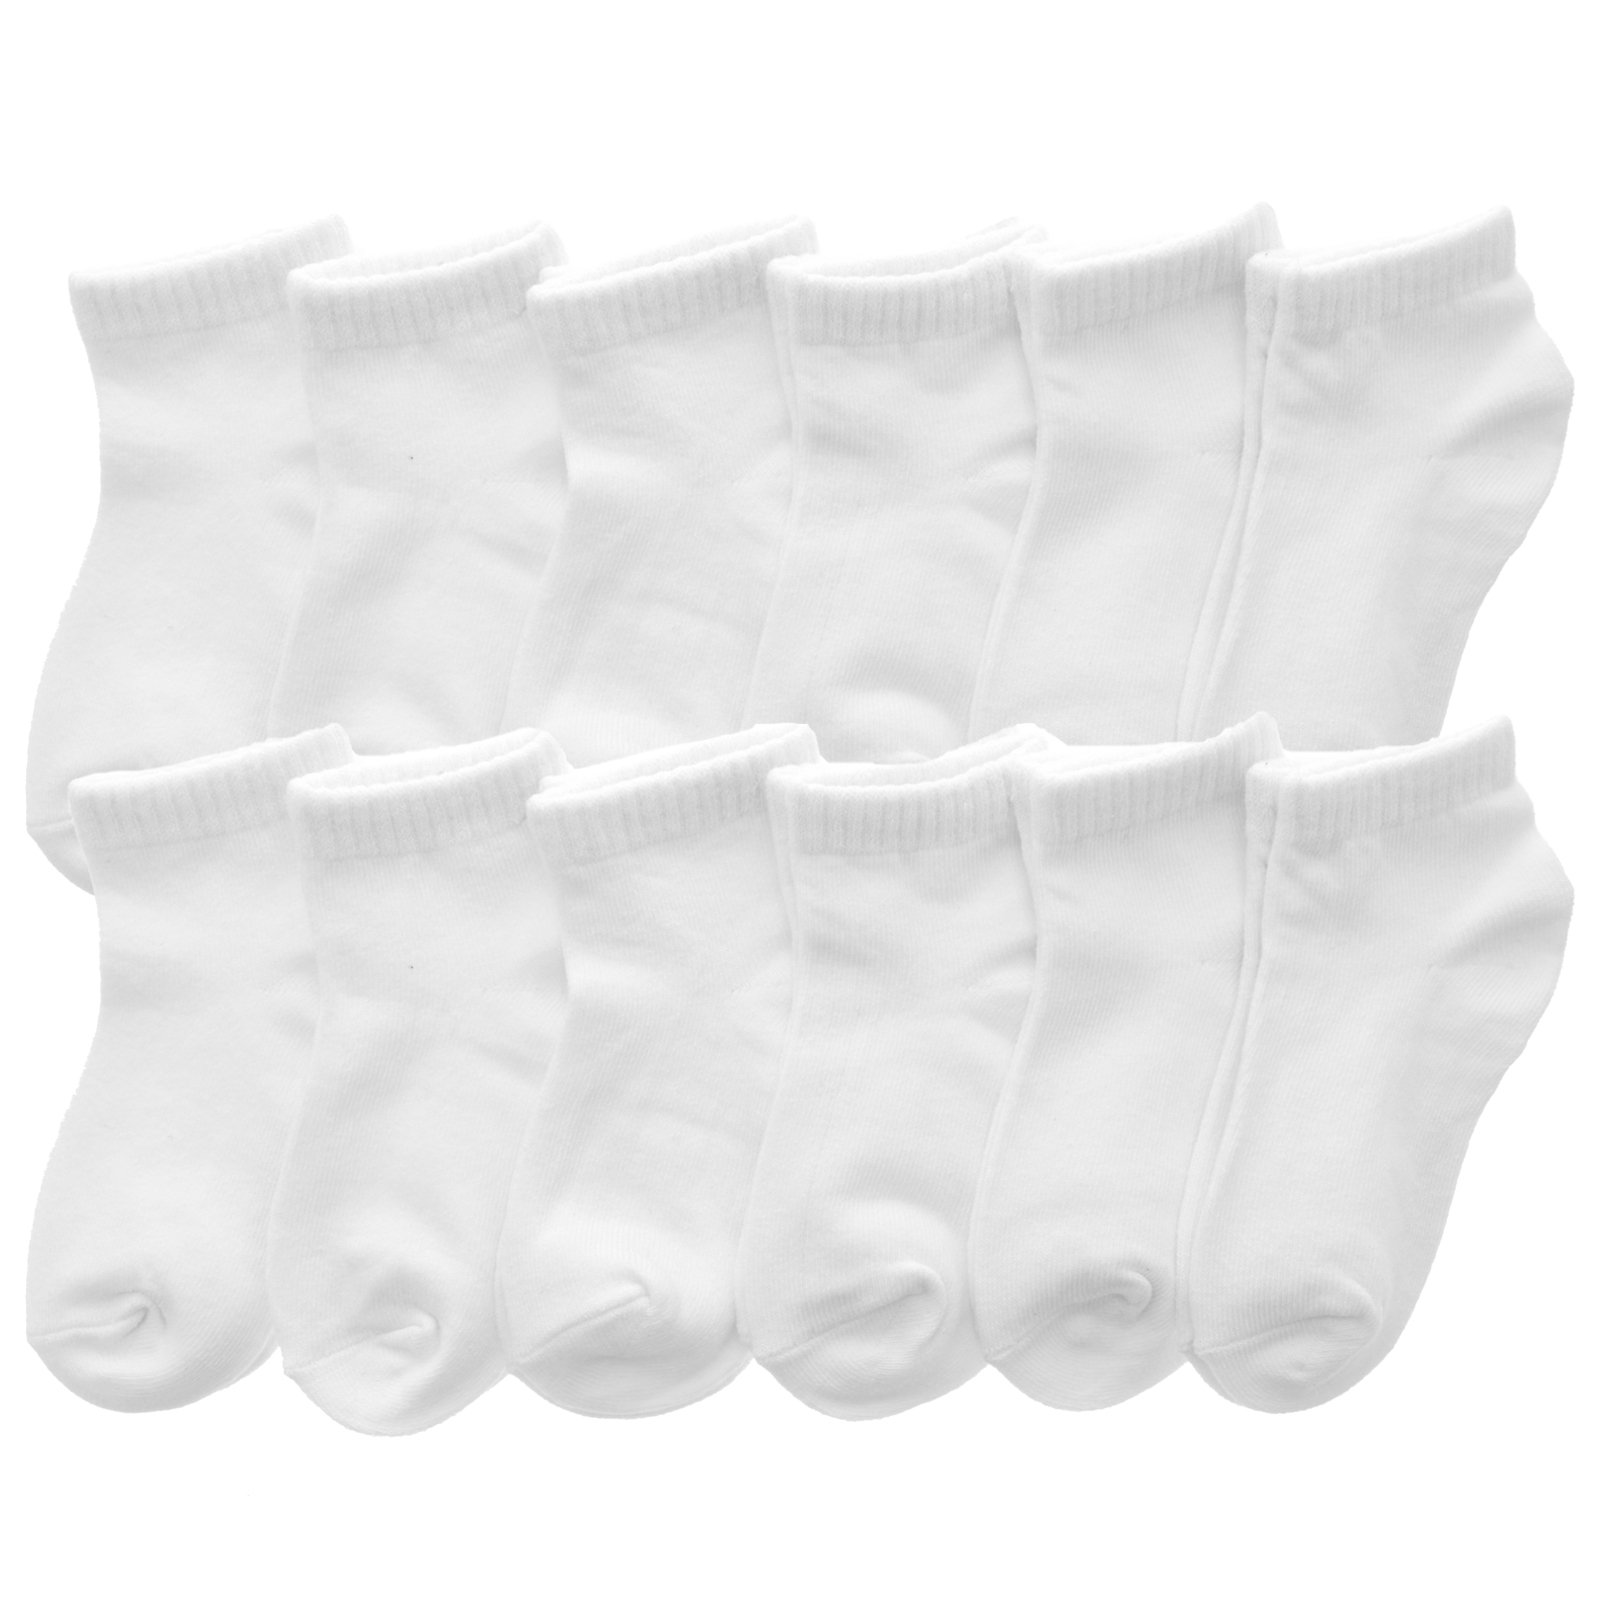 Angelina Cotton Low Cut Trainer Socks (12-Pack), 2305_WHT_6-8